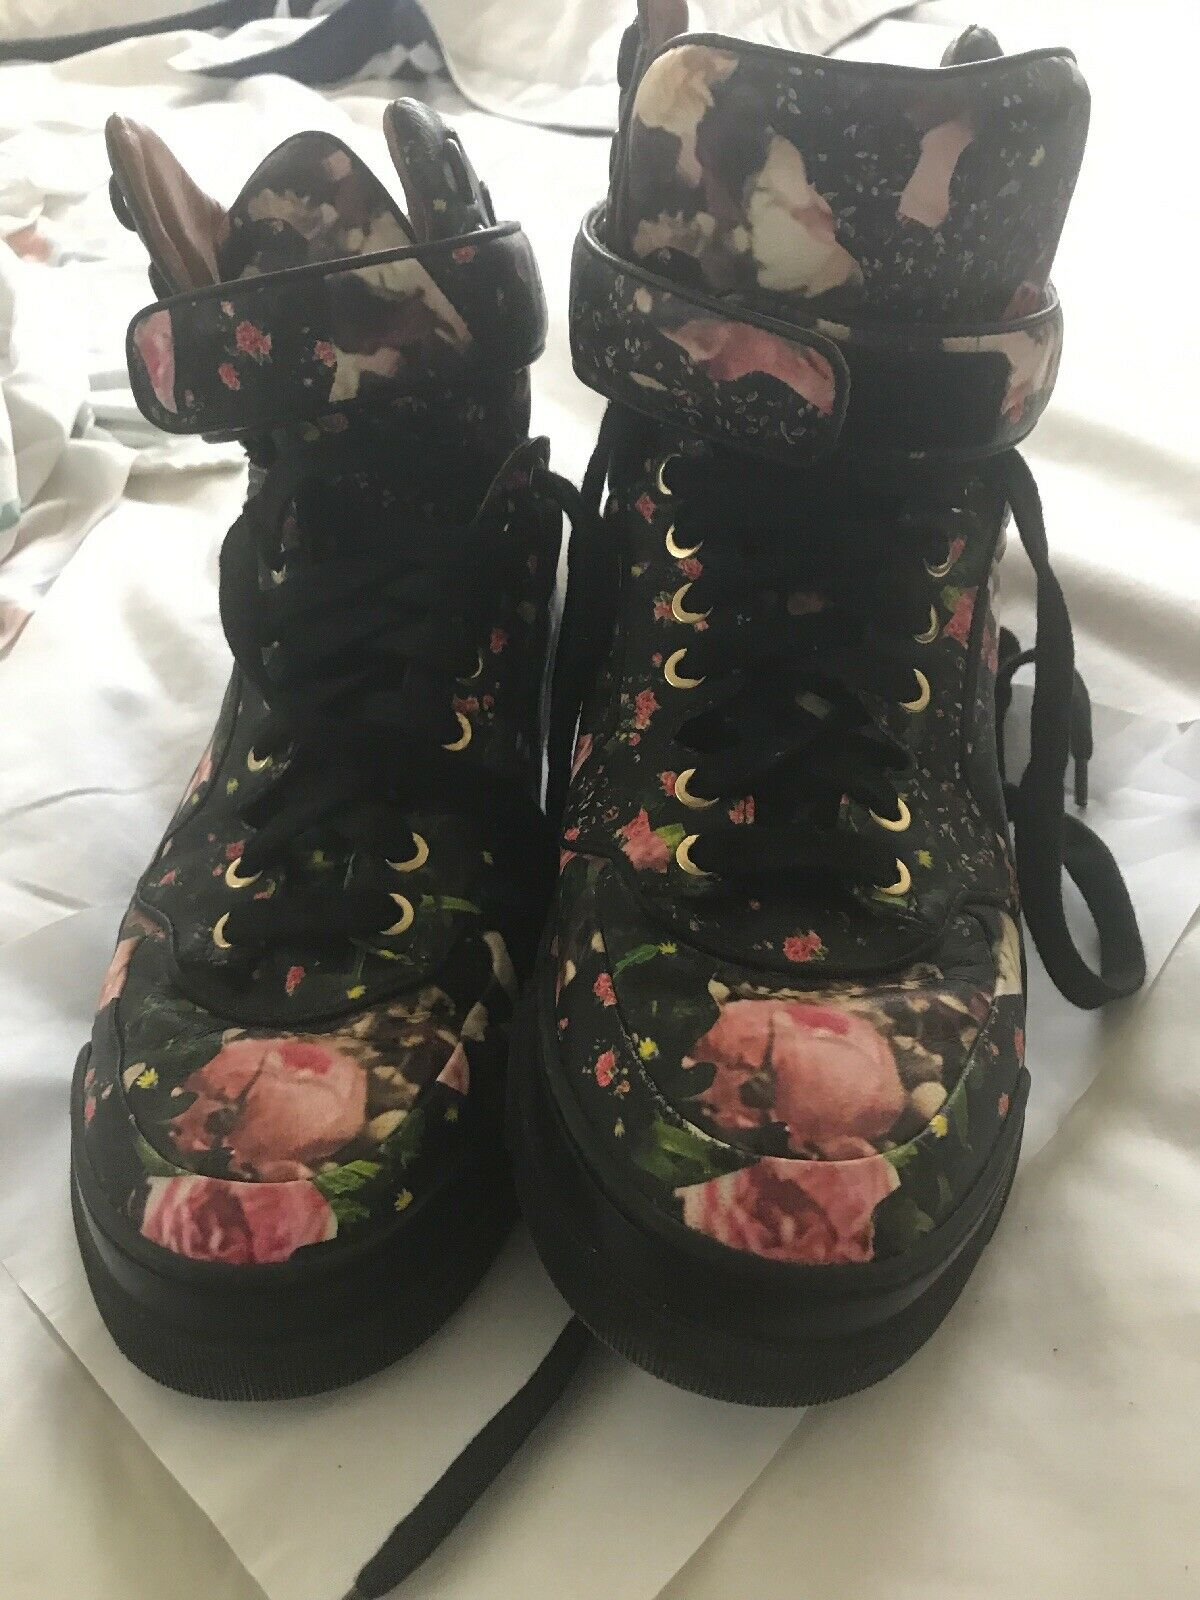 GIVENCHY floral High-top sneakers lace-up belt size 39 (K48360 Great